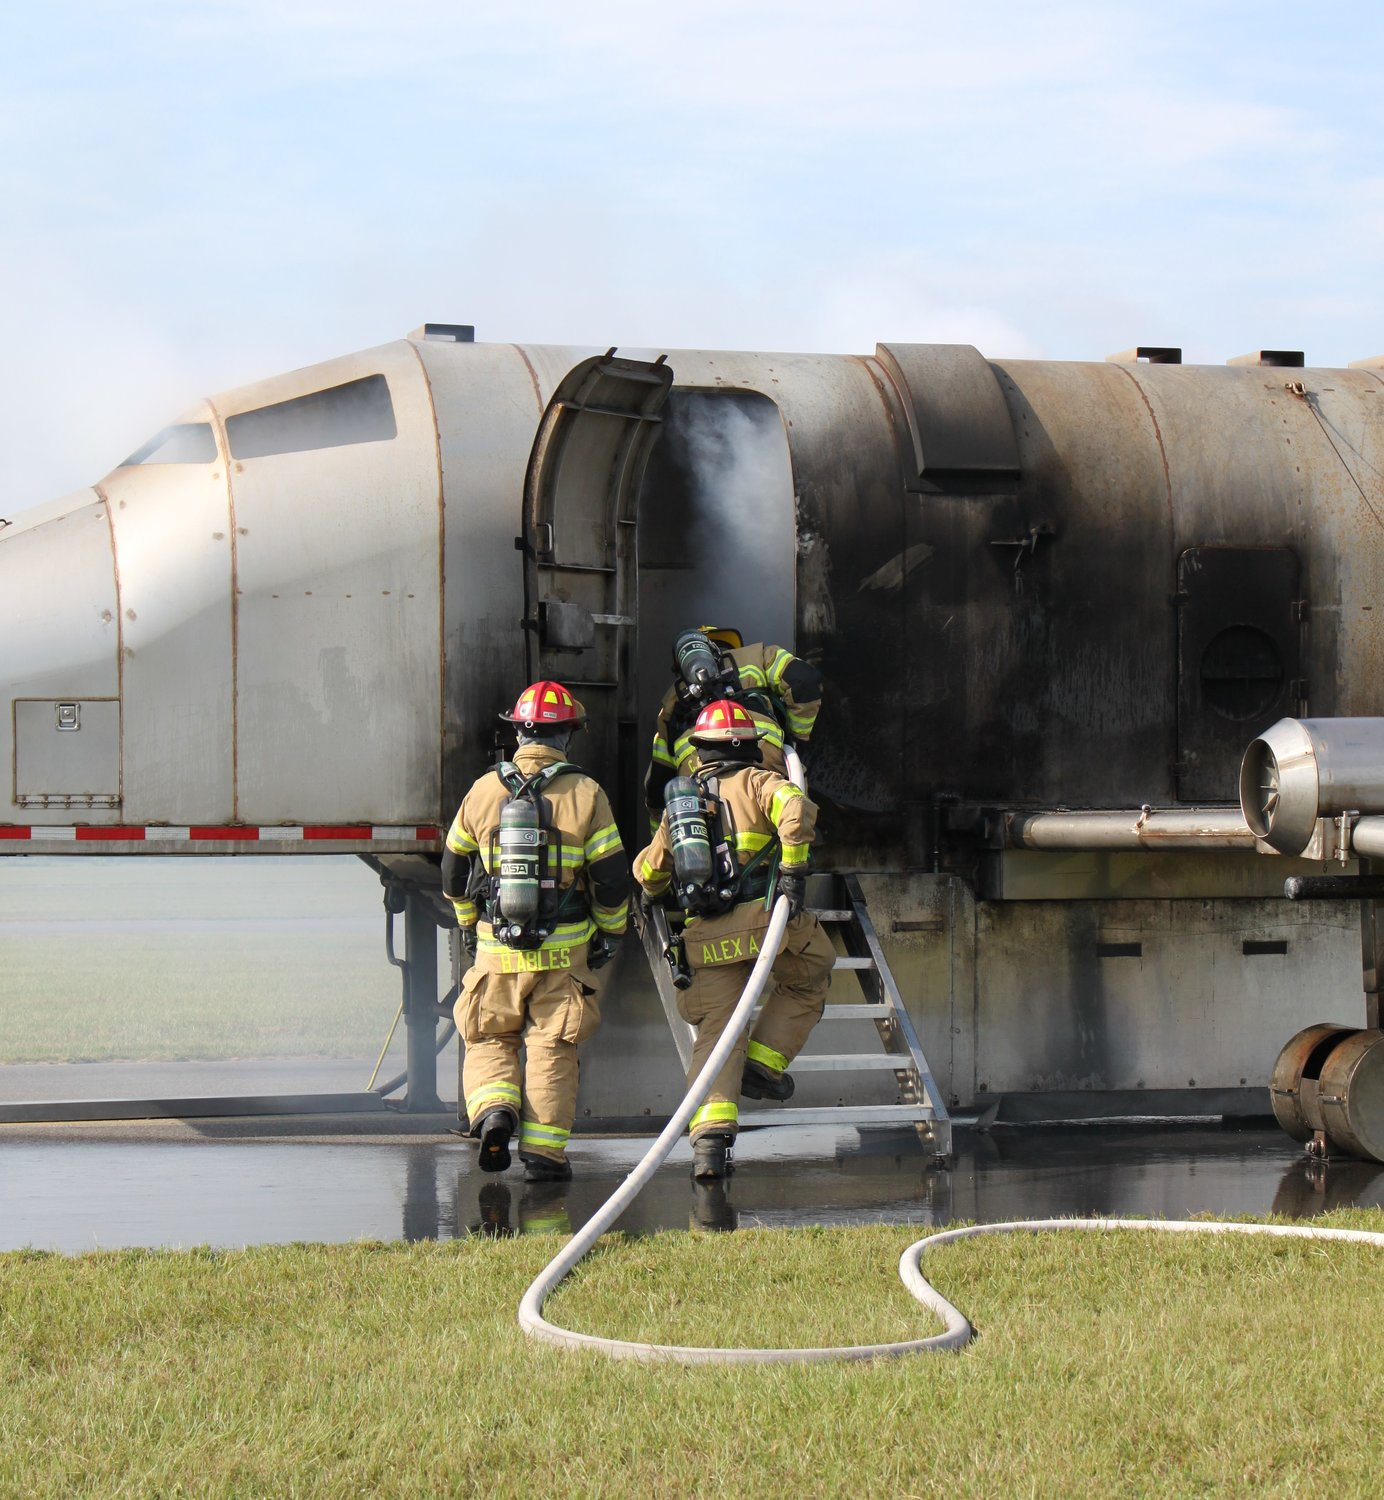 Fire crew moves into the fuselage to fight an interior fire.